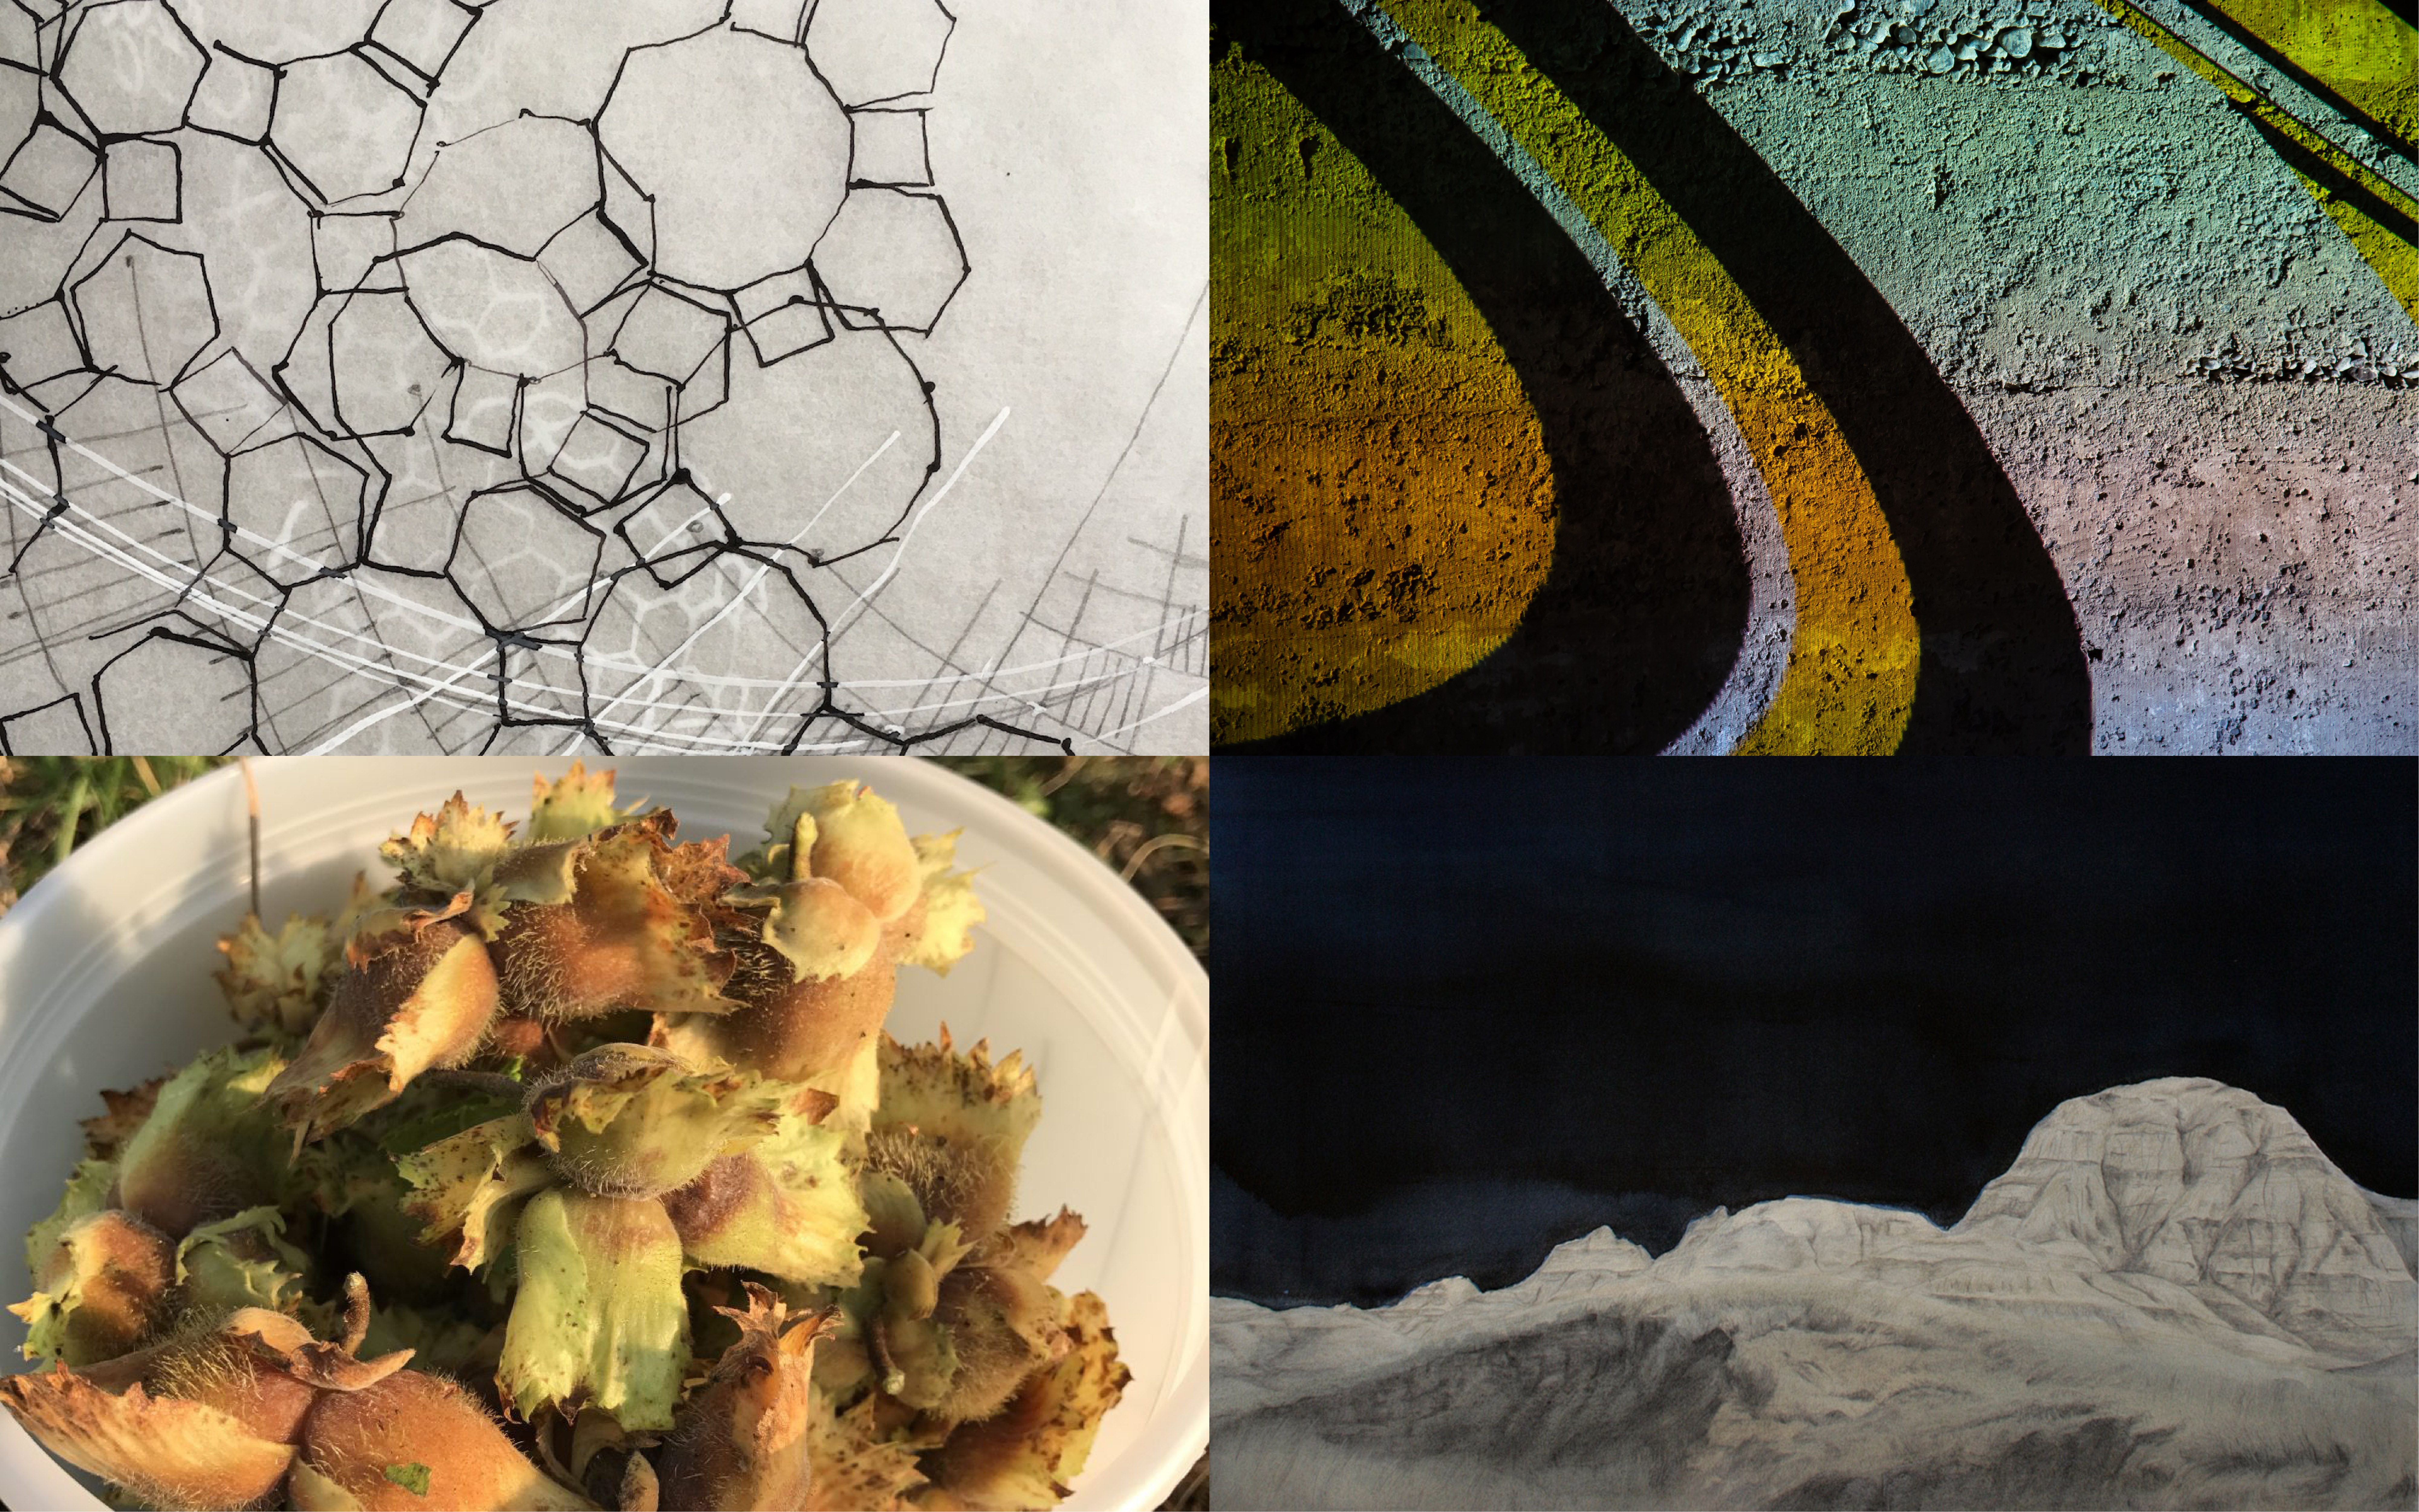 Composite image in four quadrants, with drawings of organic forms, landscape, and photo of plants.